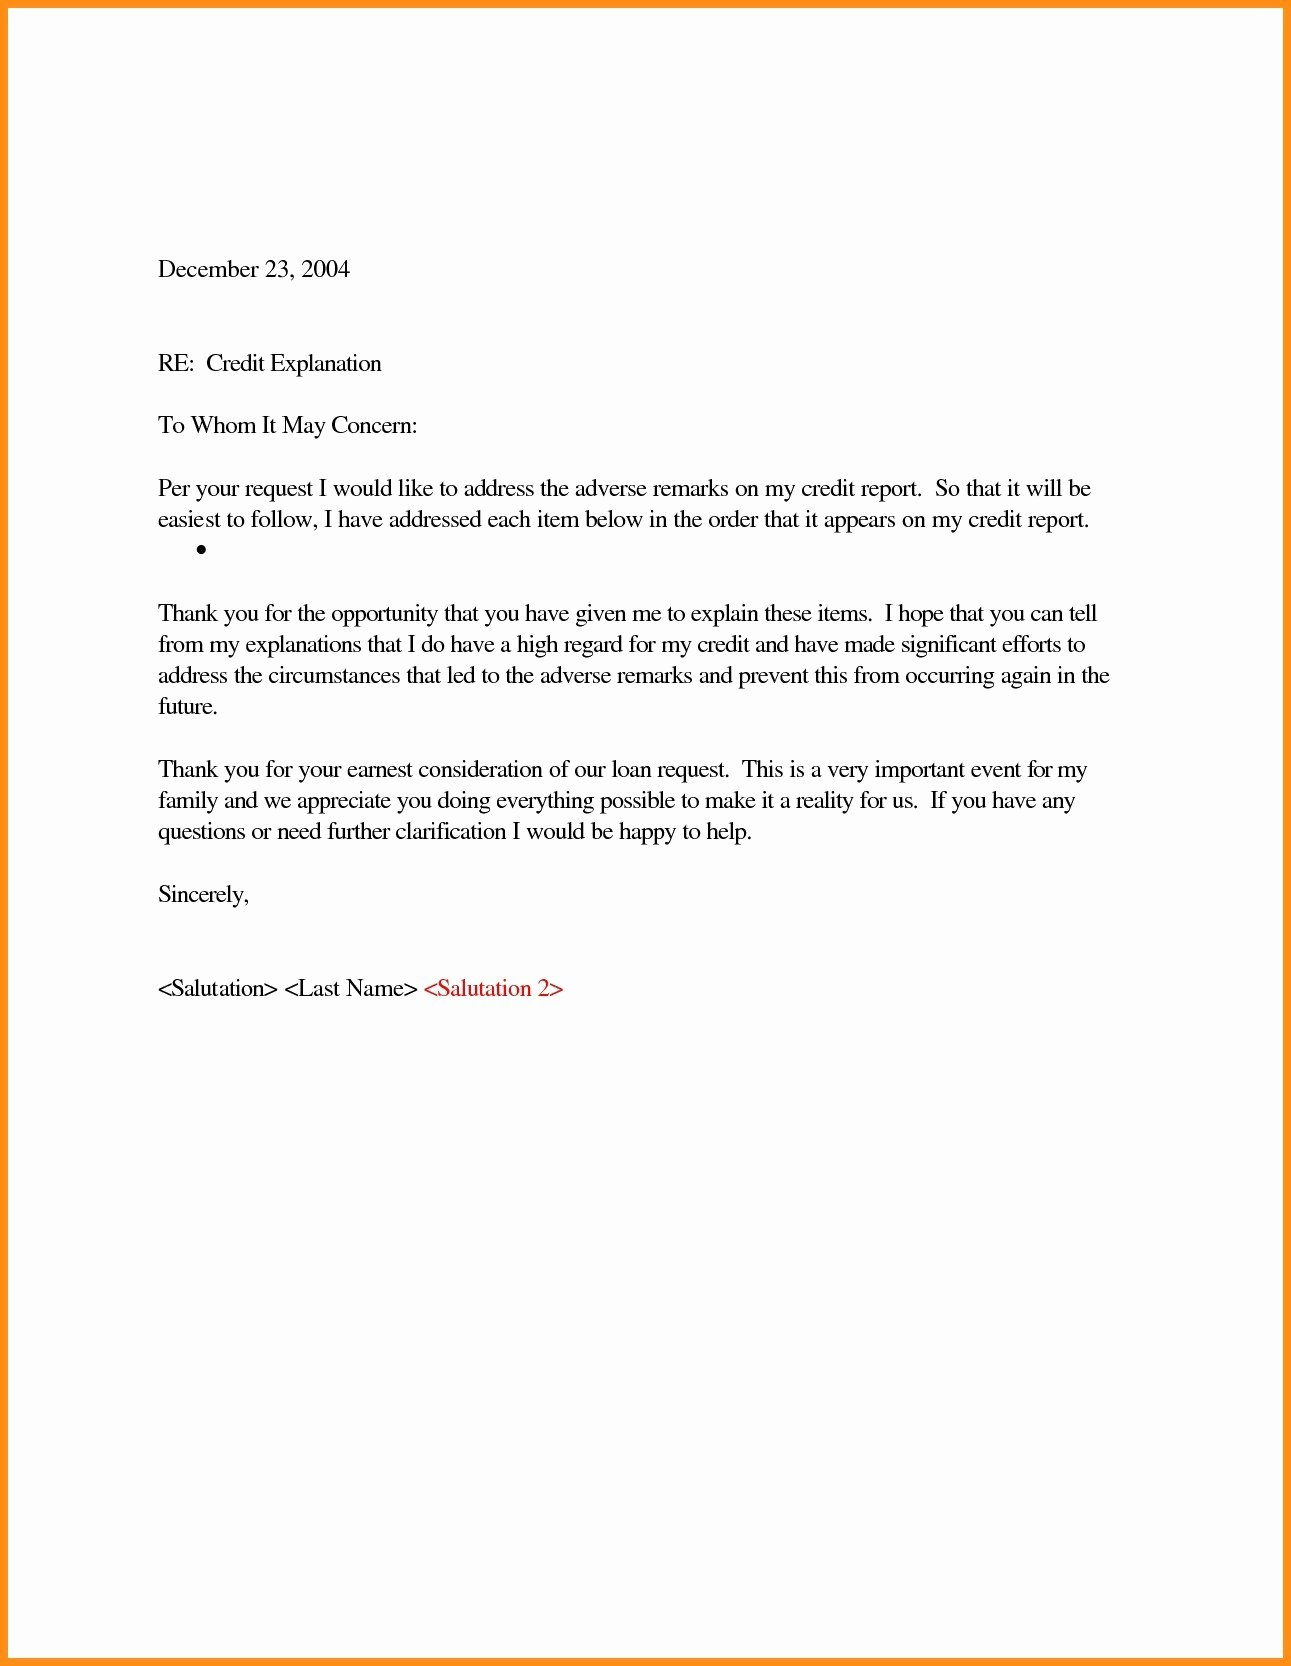 Late Payment Explanation Letter Elegant Explanation Letter Sample for Discrepancy Archives